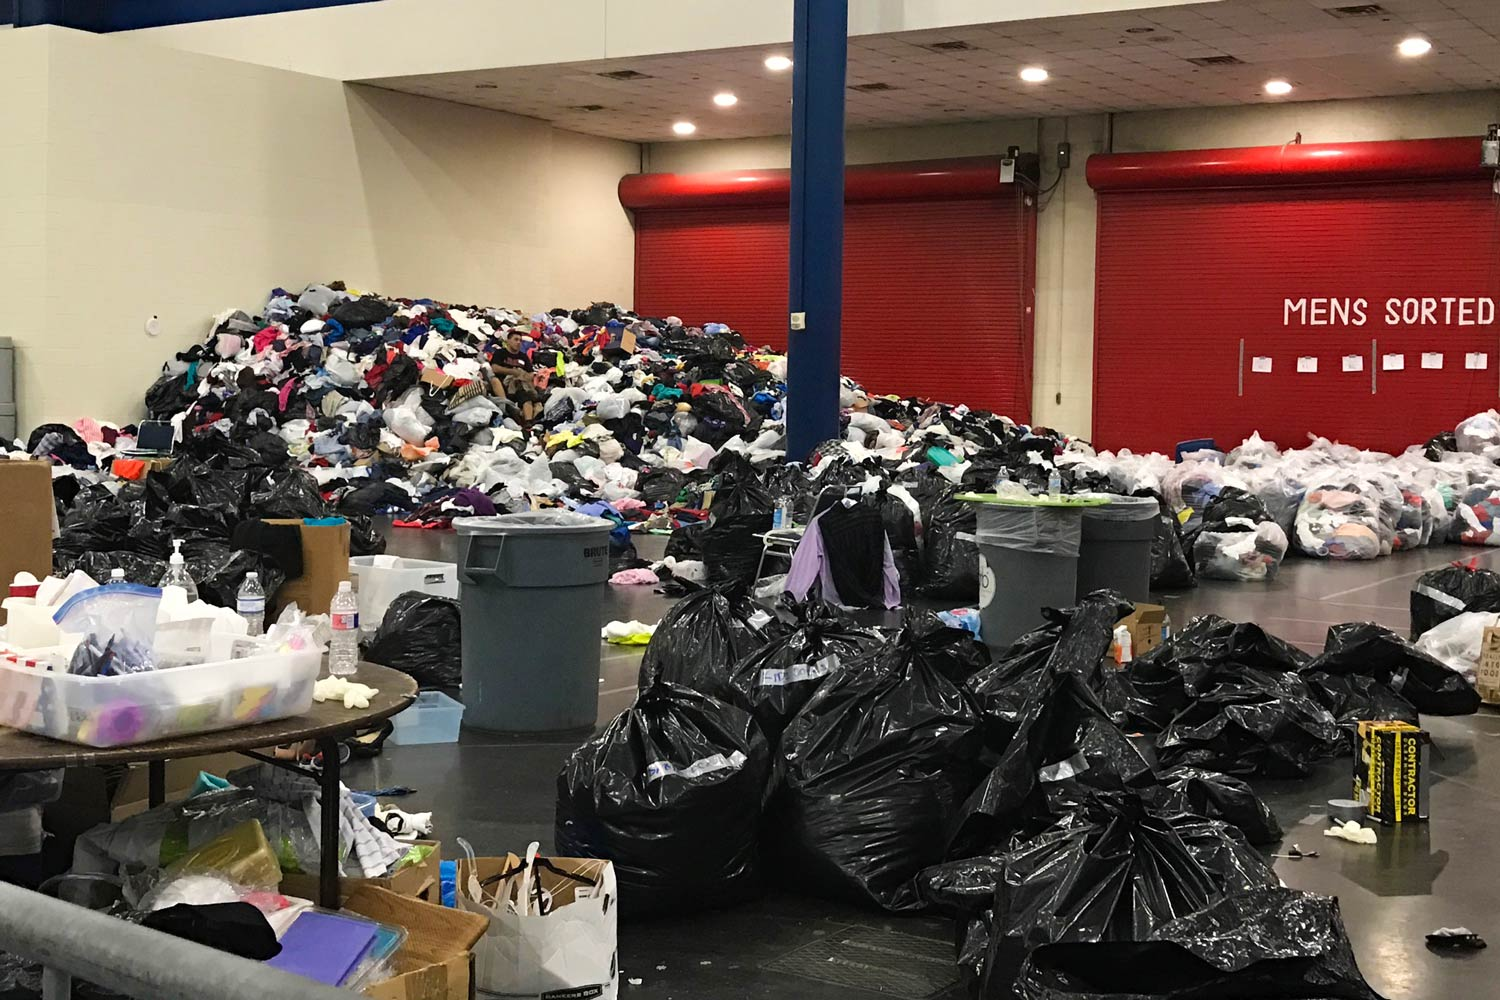 Surveying mounds of donations at a Houston shelter.